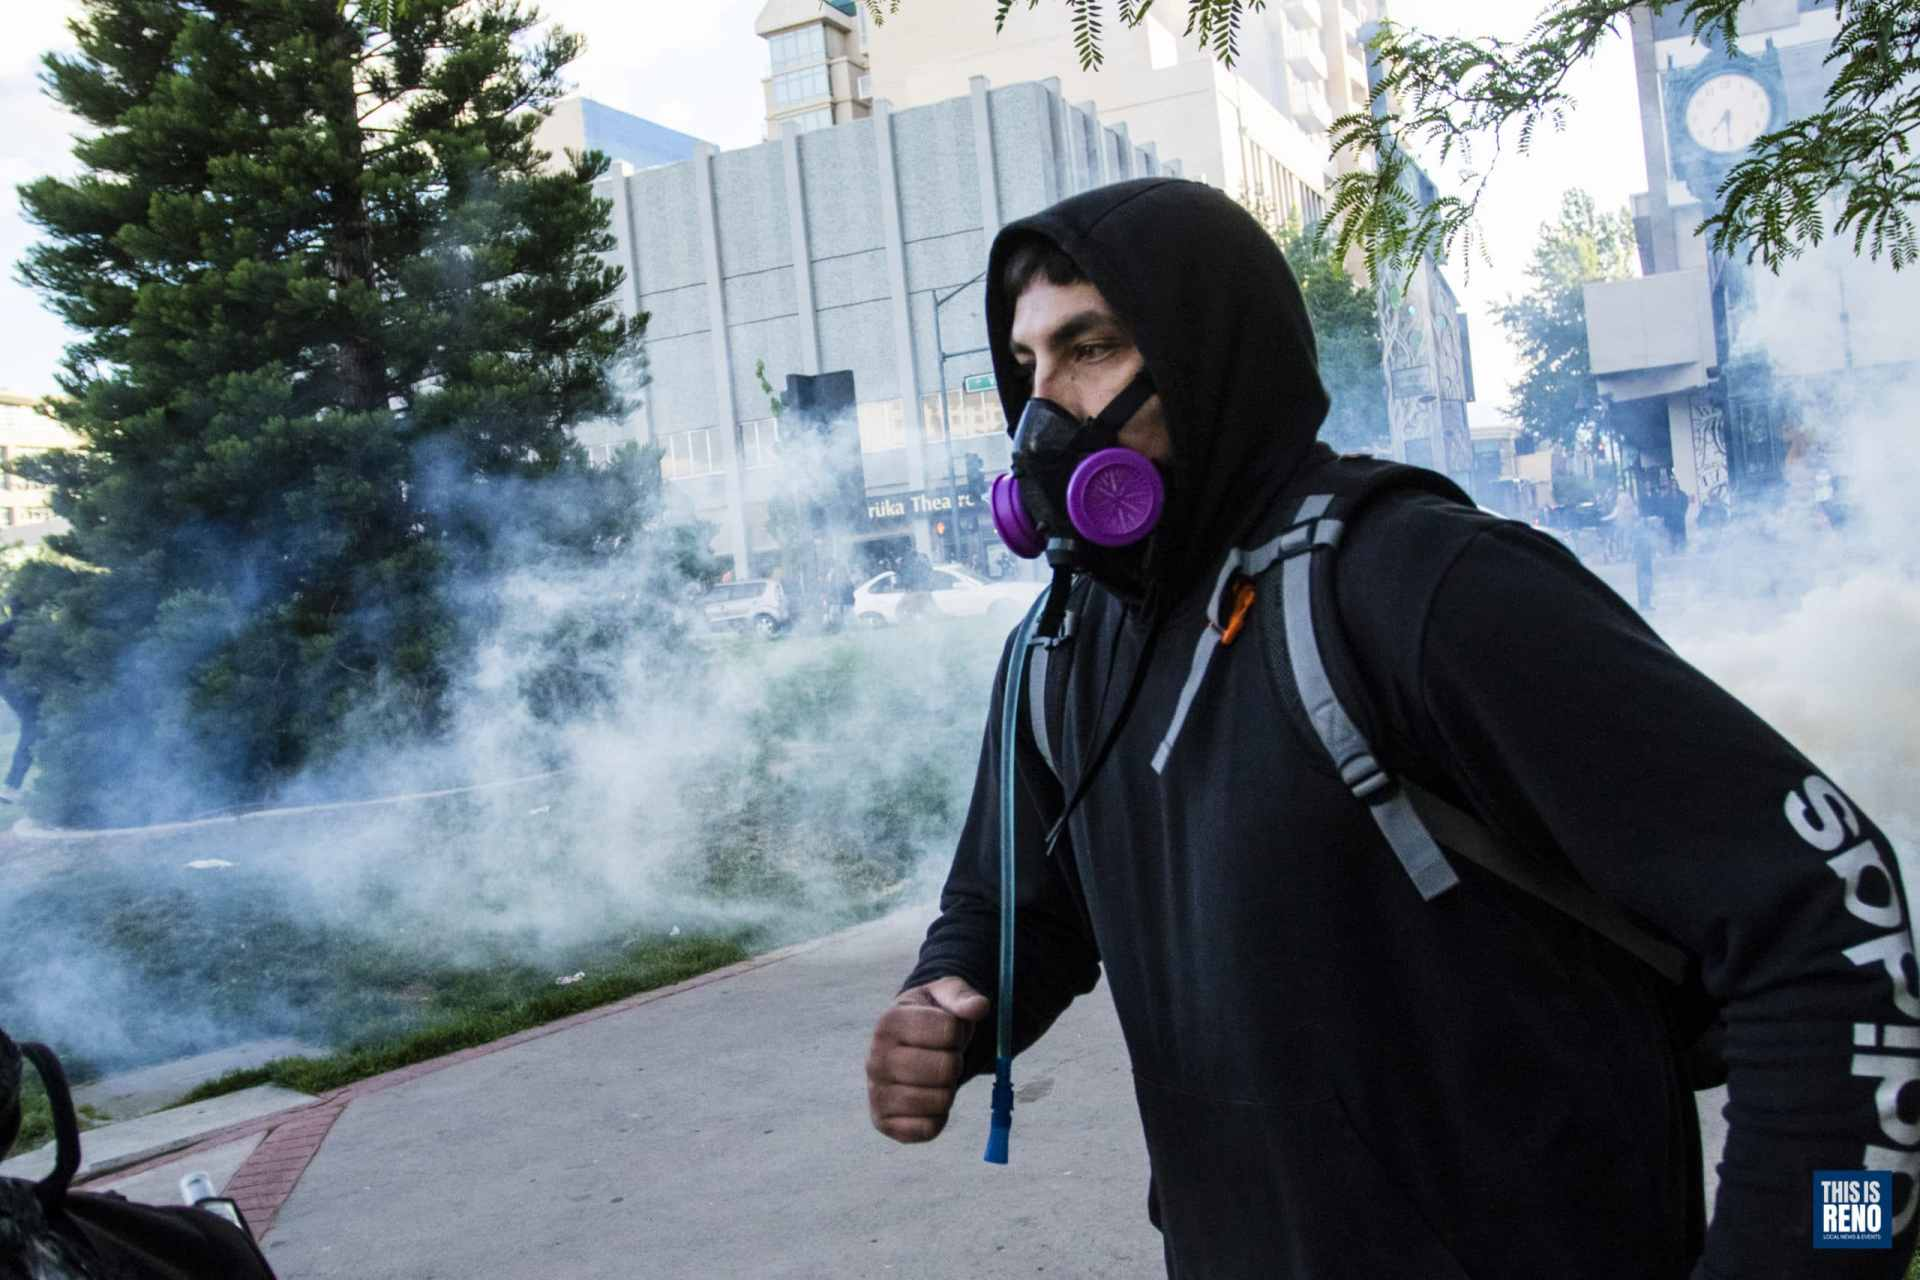 A protester flees tear gas in downtown Reno during riots after a Black Lives Matter protest. Image: Ty O'Neil